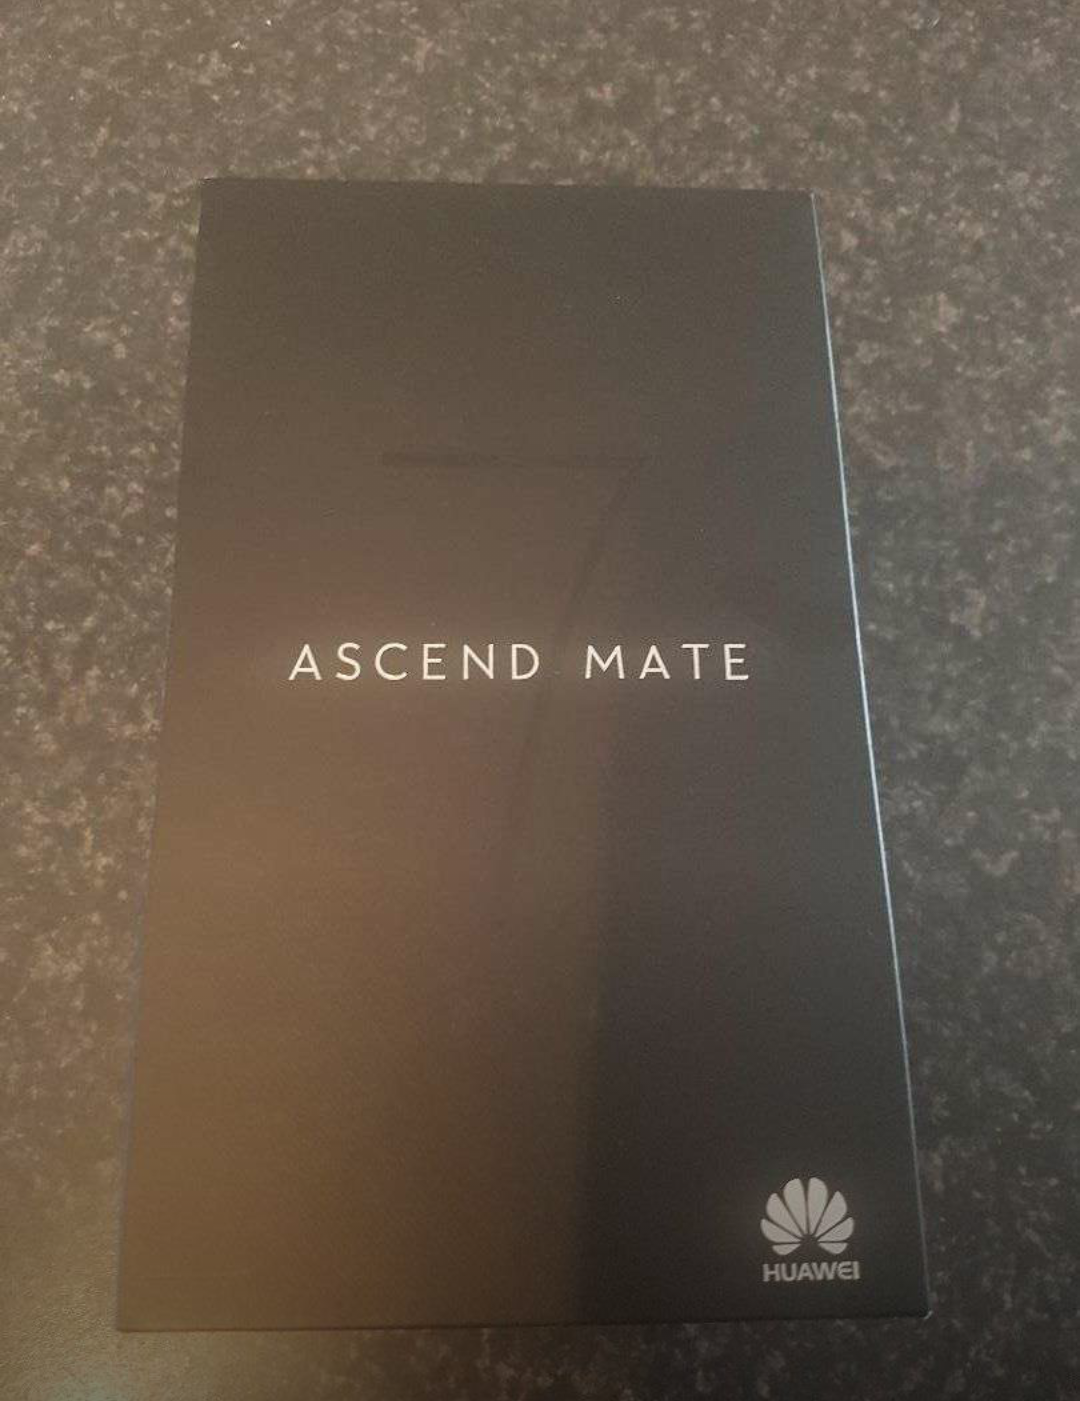 Huawei ascend mate 7 for swop with IPhone 6s plus